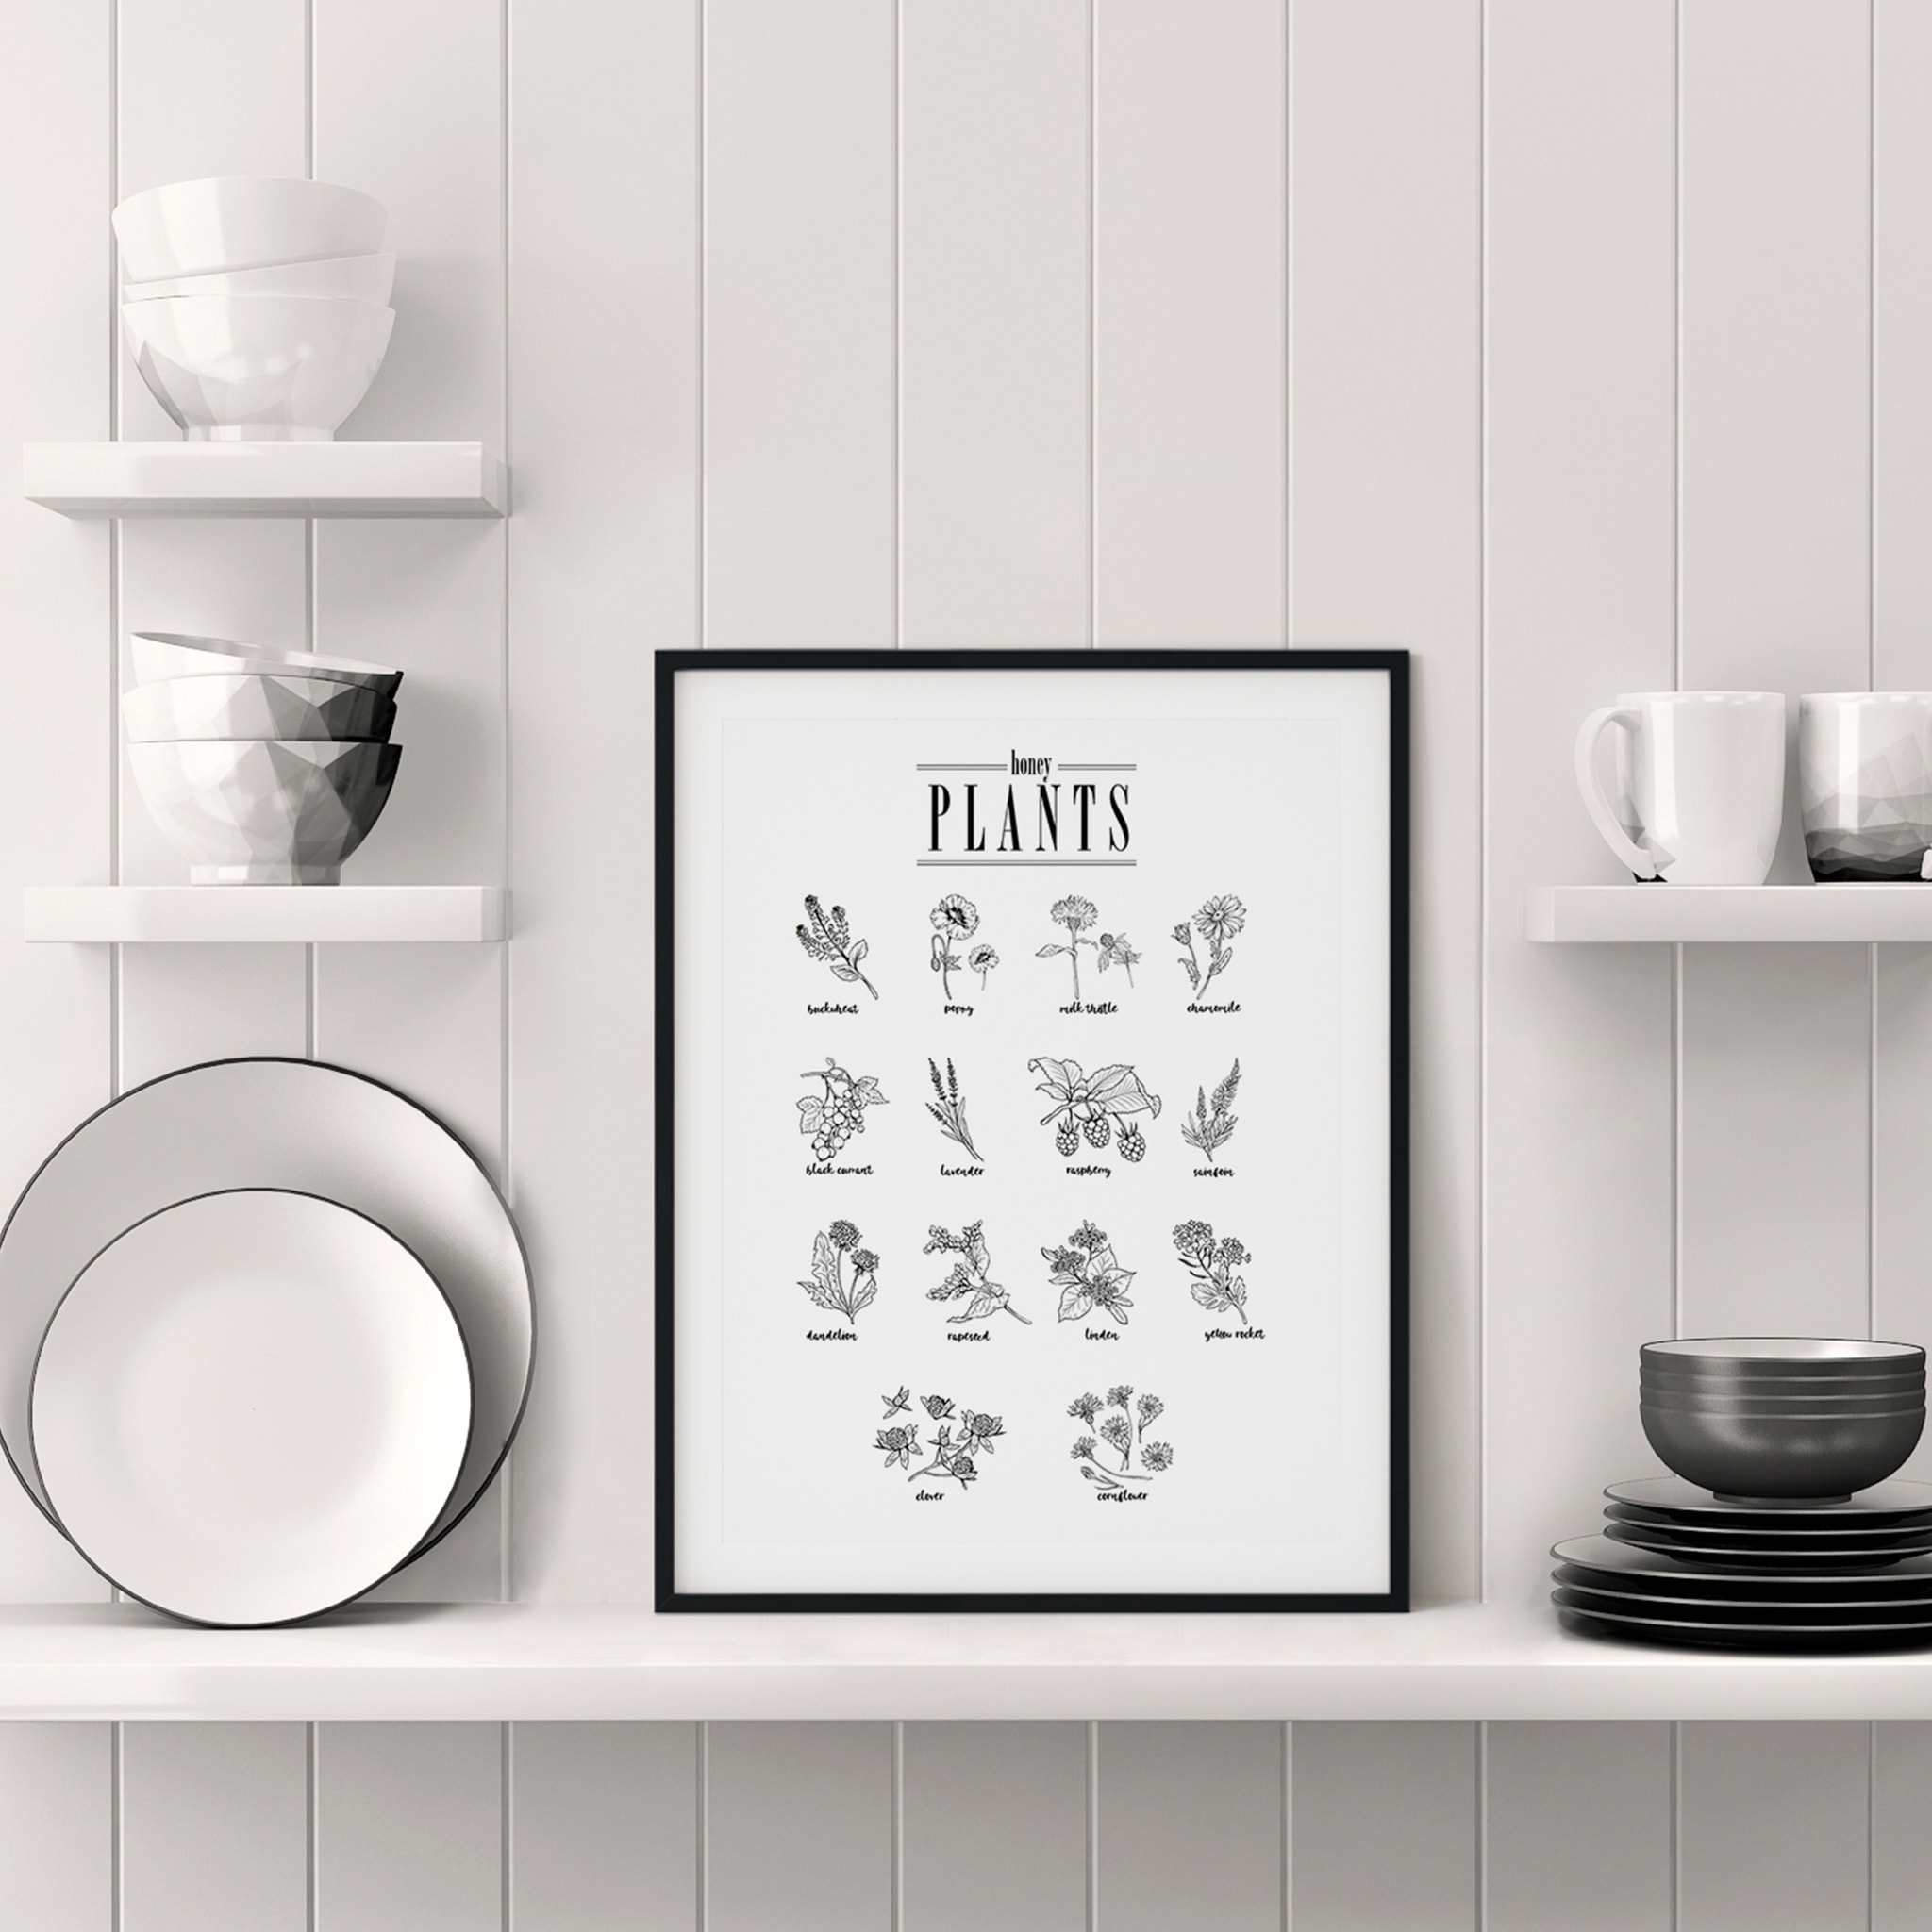 Honey Plants poster in black frame on the shelf in the kitchen